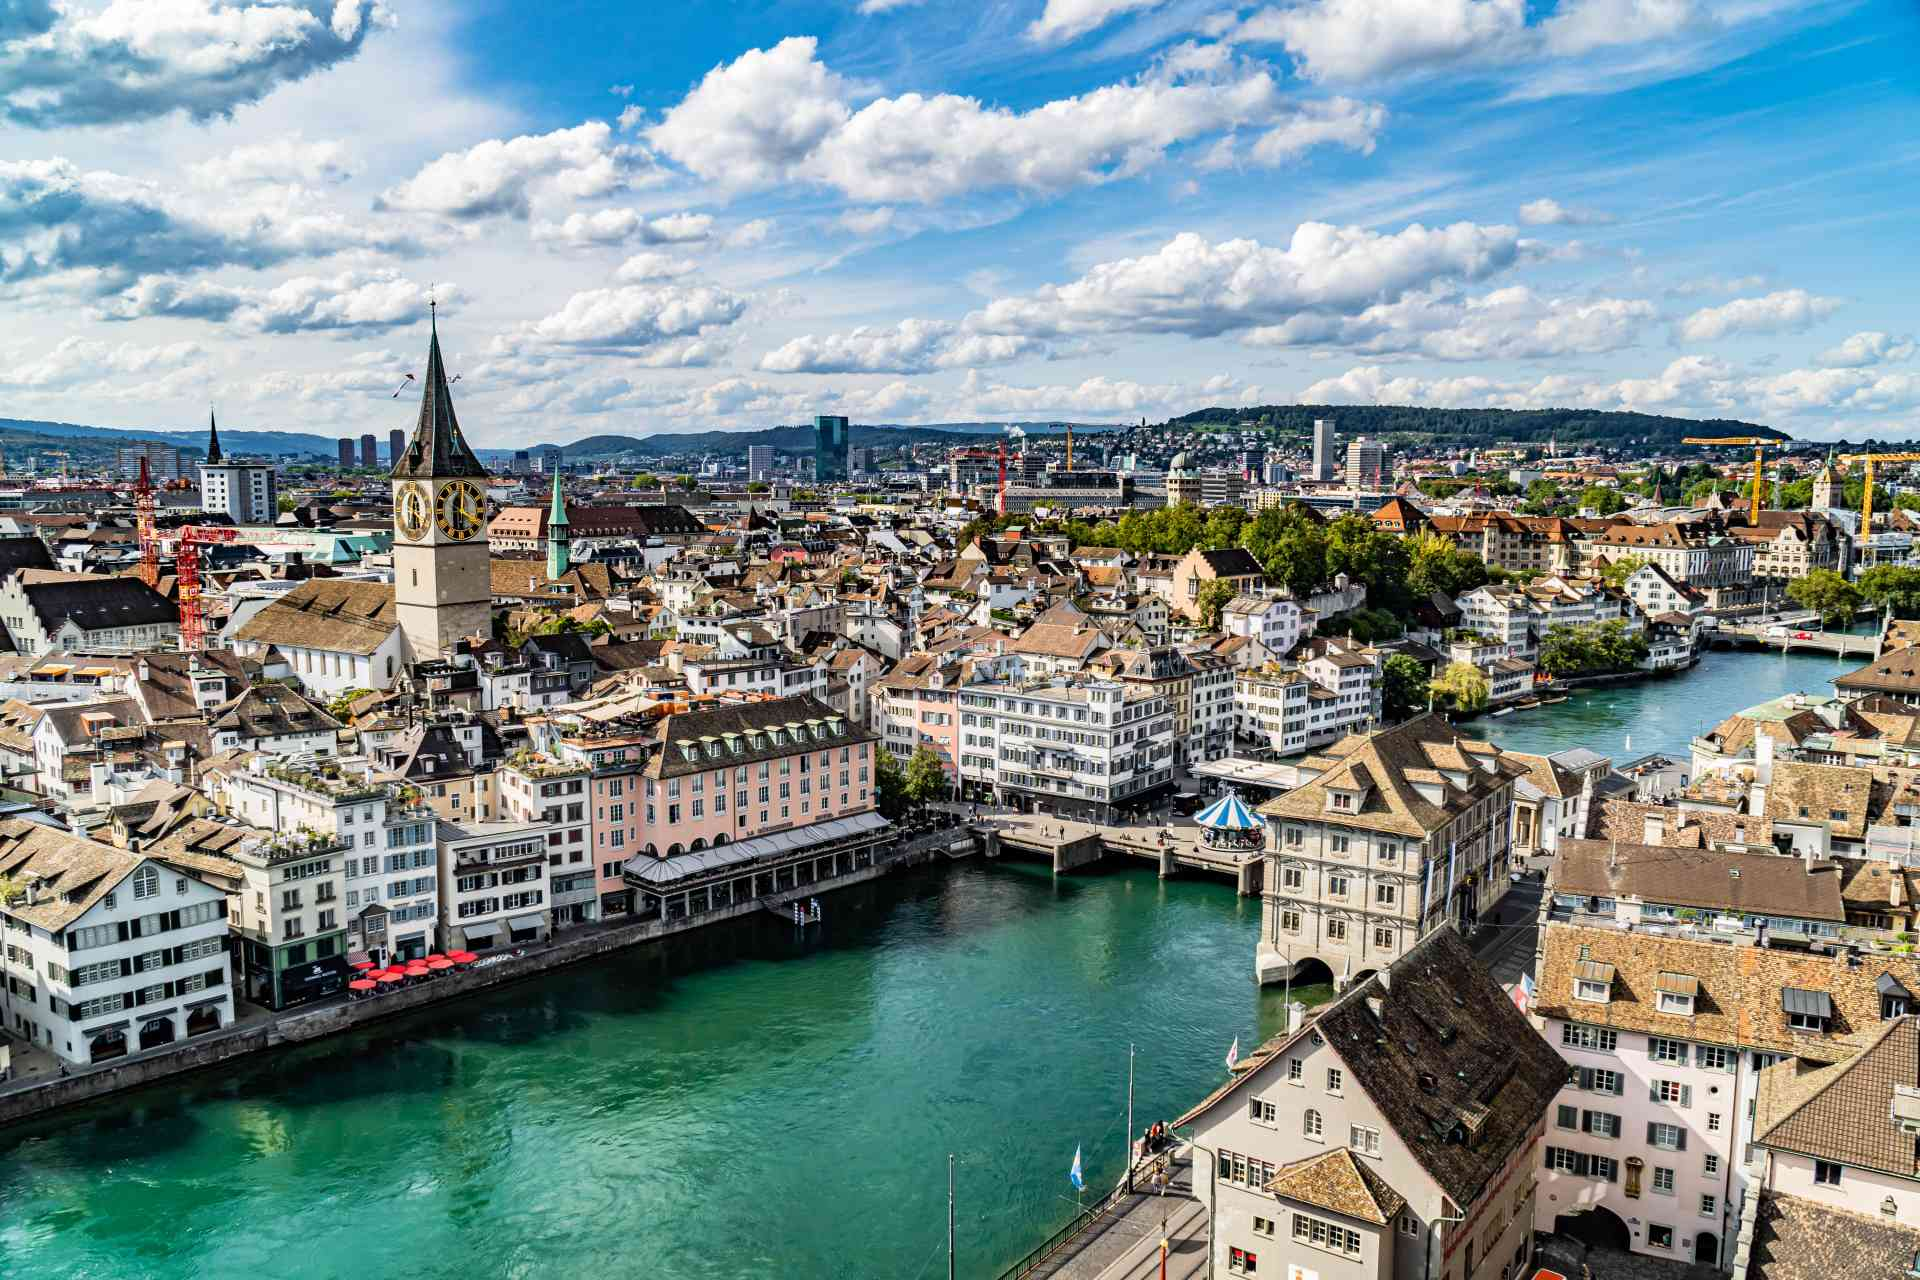 Zurich, Switzerland by Mirza Ariadi